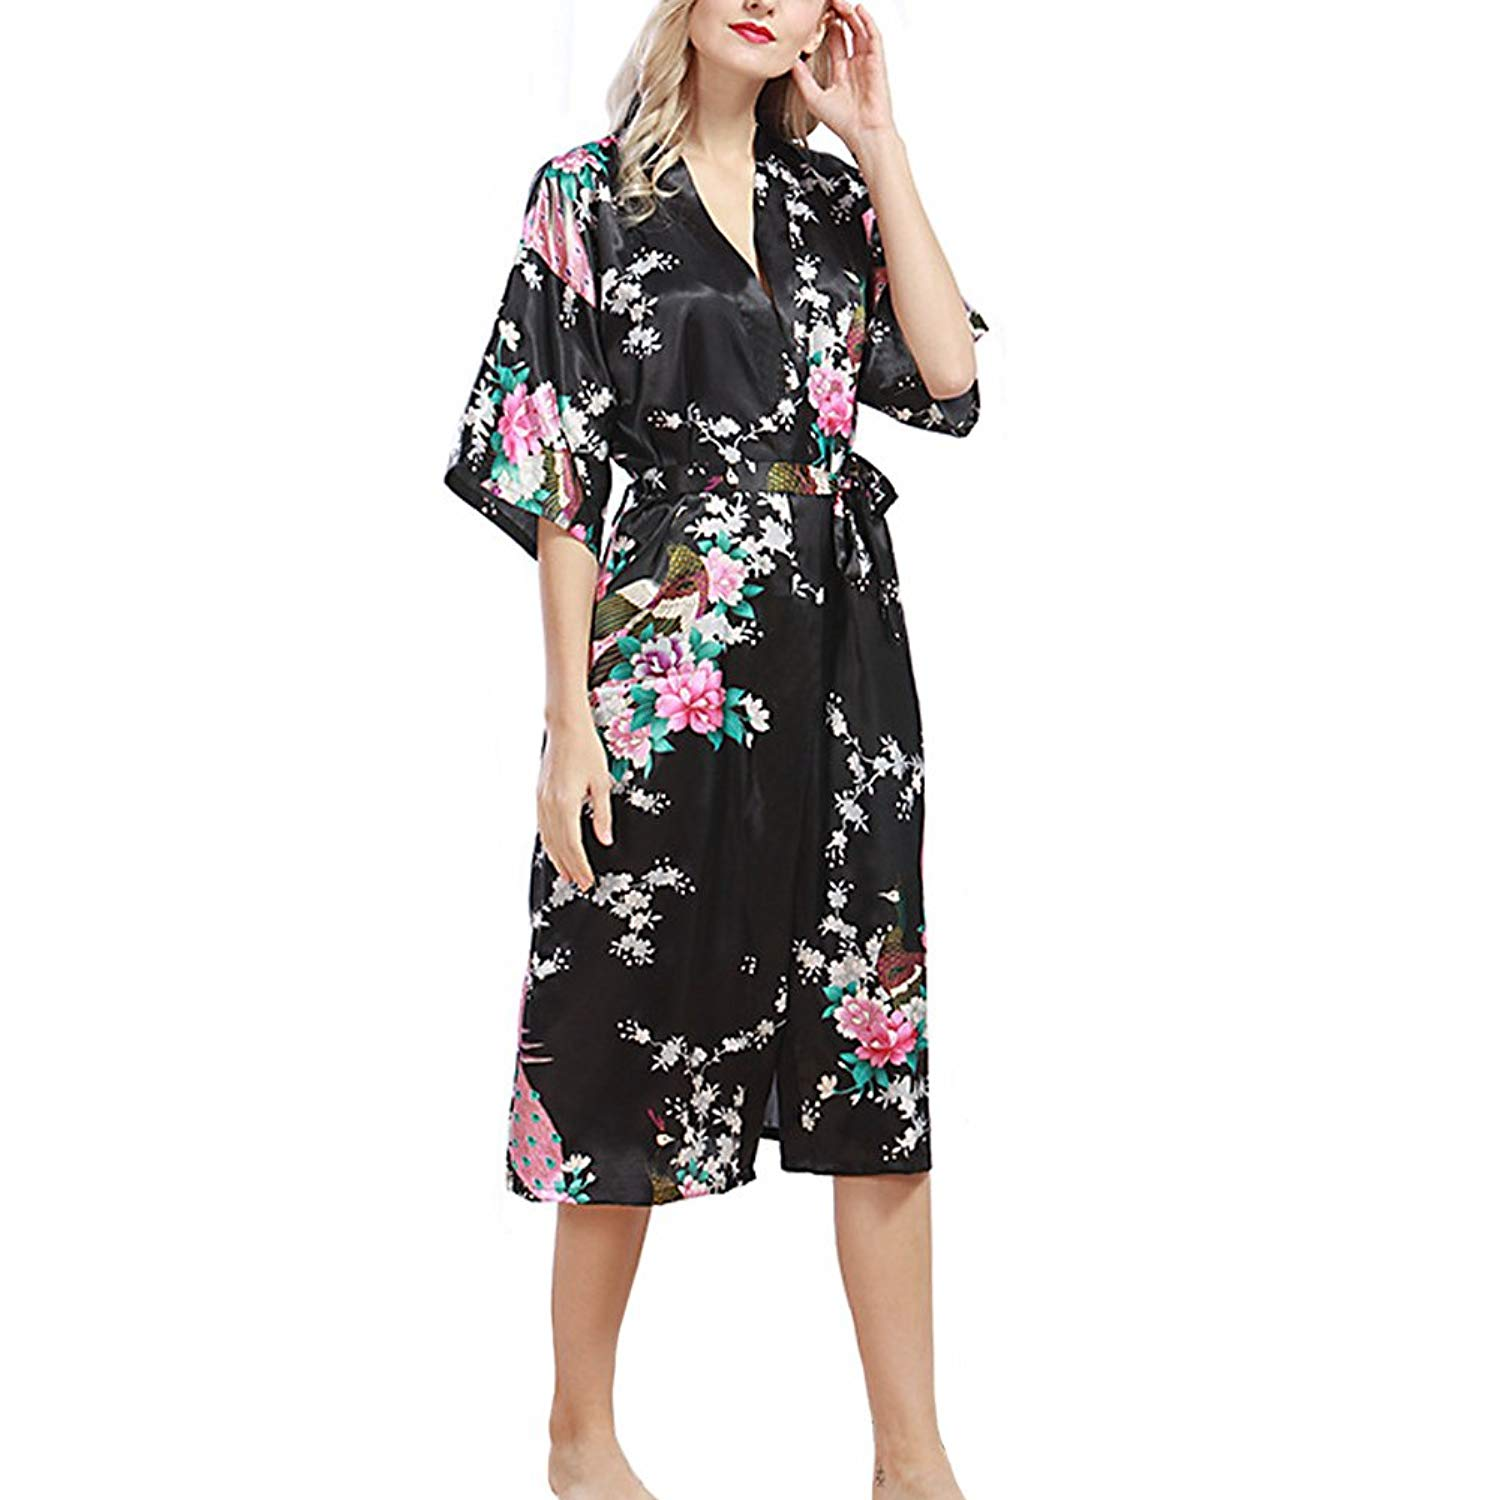 d5bd32b77c0 Get Quotations · SUITEASY Women Kimono Robe Soft Satin Nightwear Printed  Peacock Long Bridal Robe